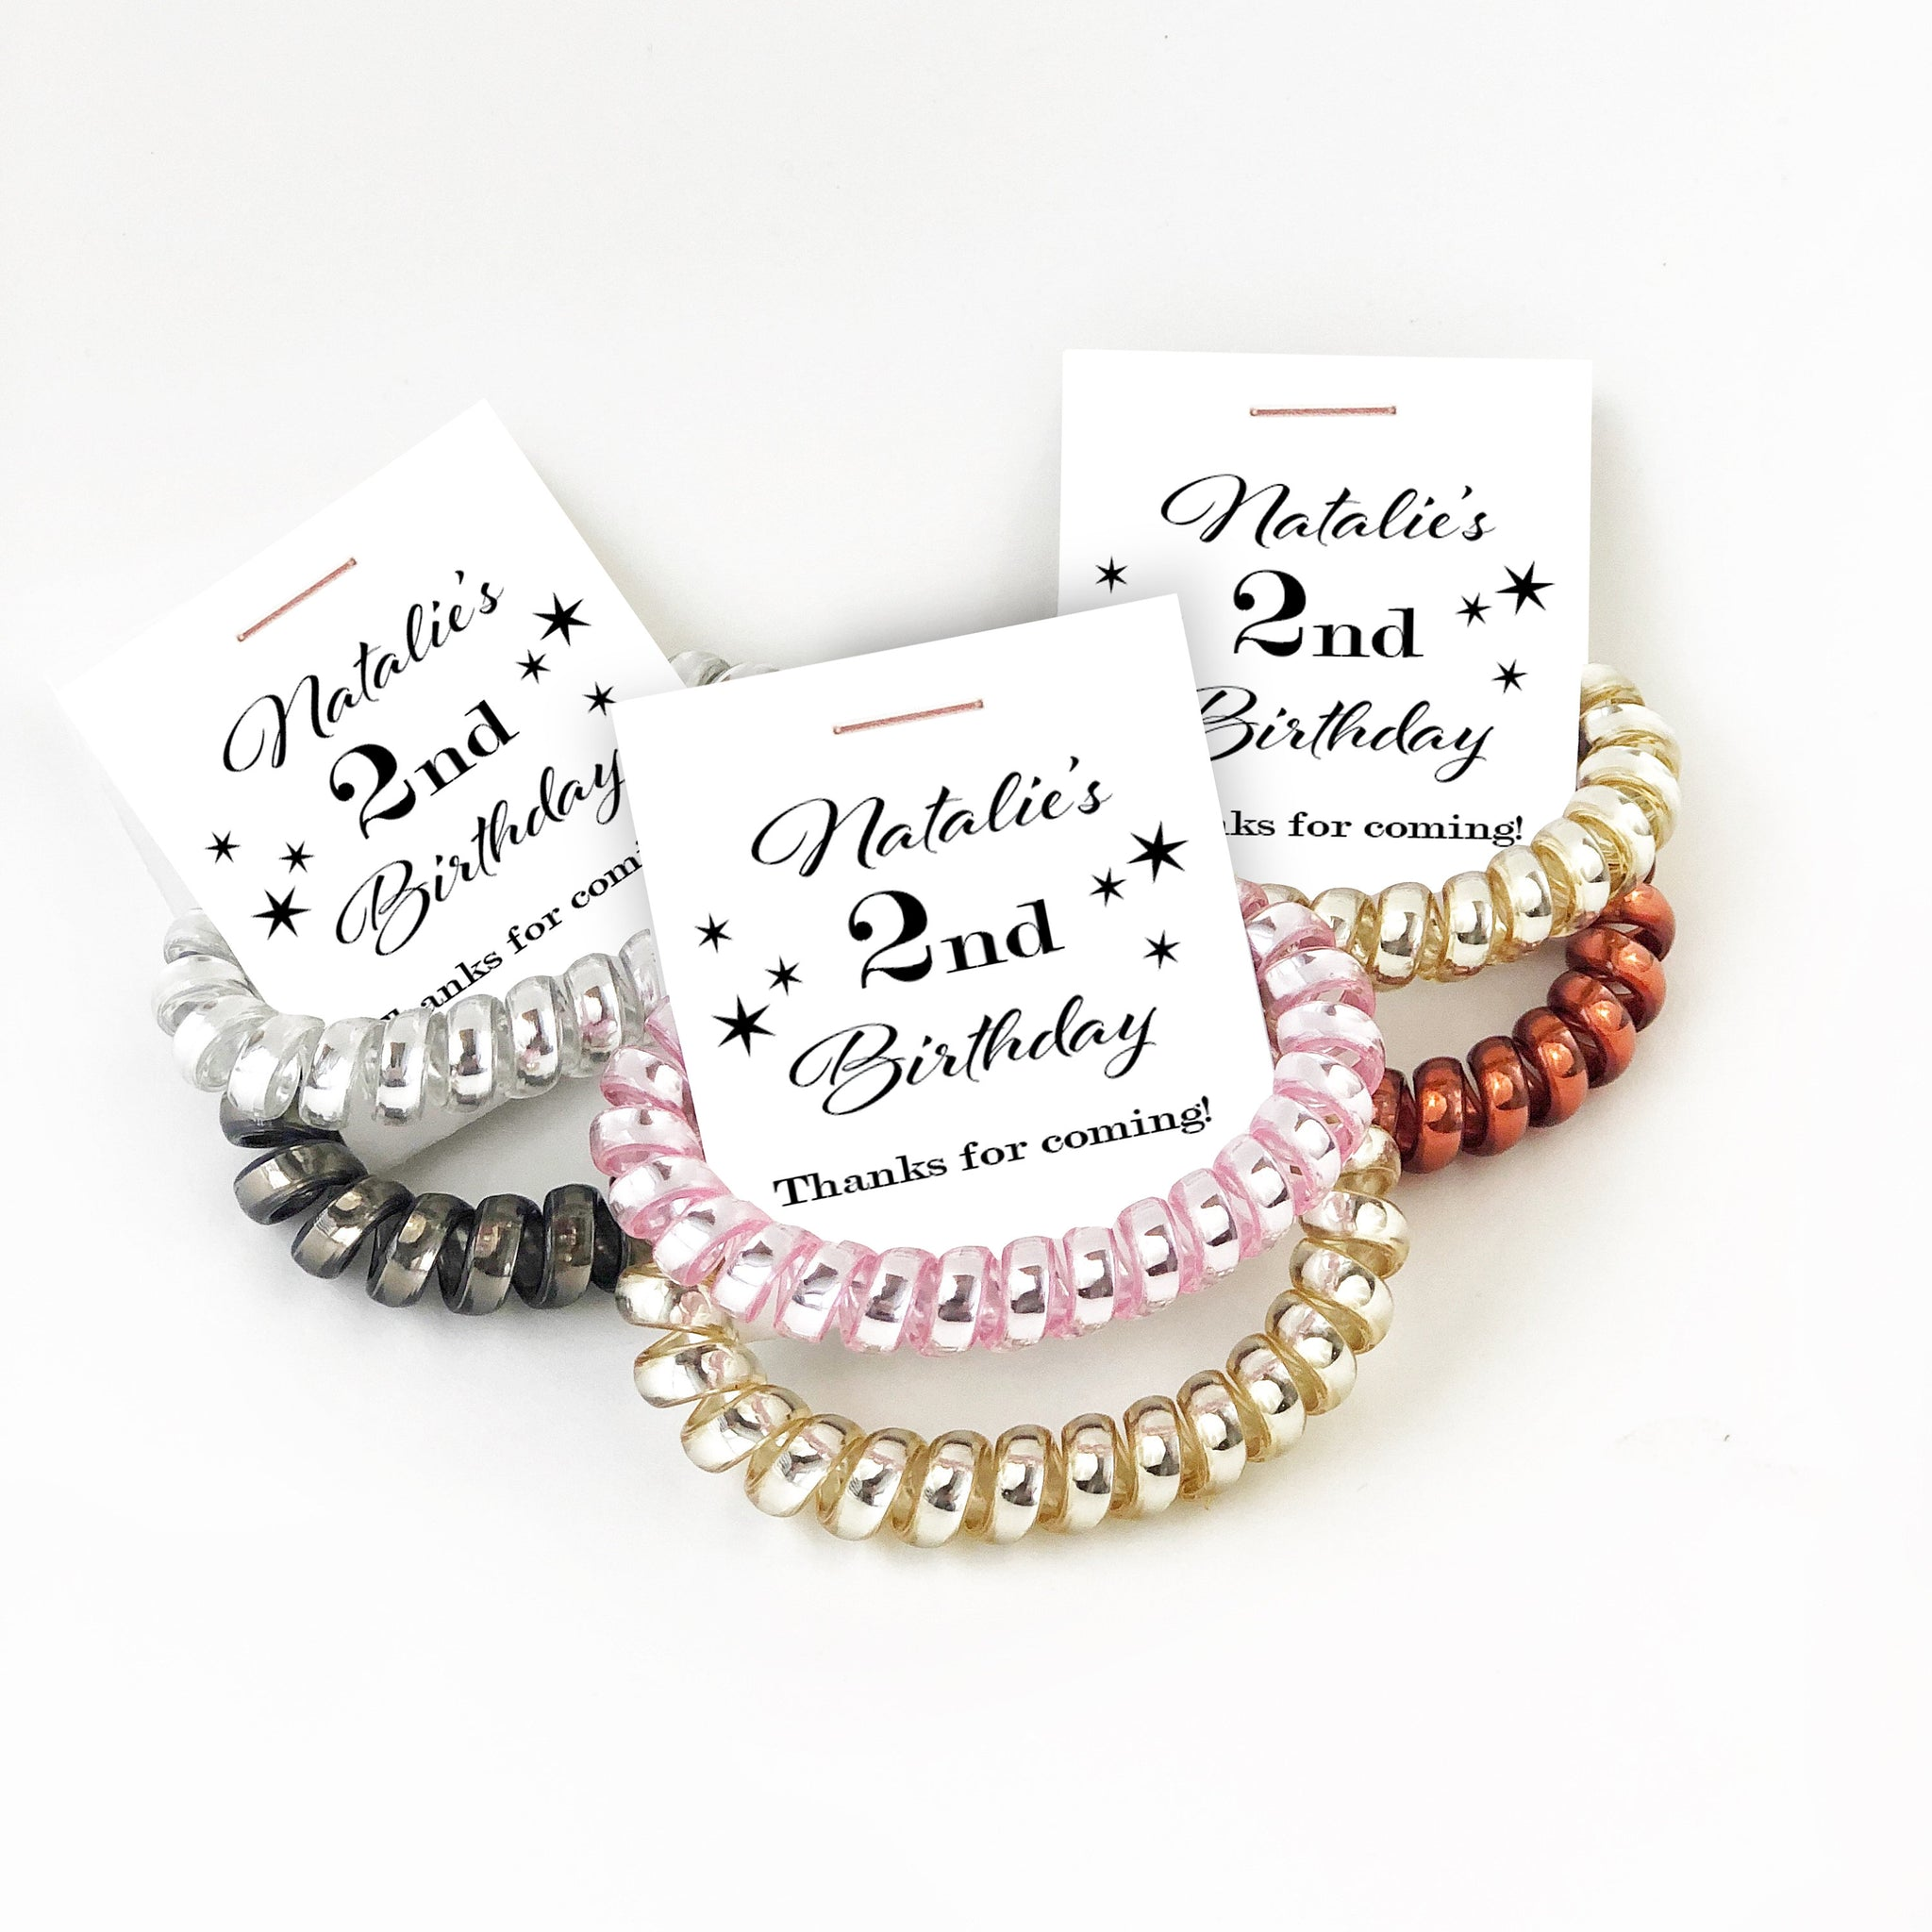 2nd Birthday Party Favors, Spiral Hair Ties - @PlumPolkaDot